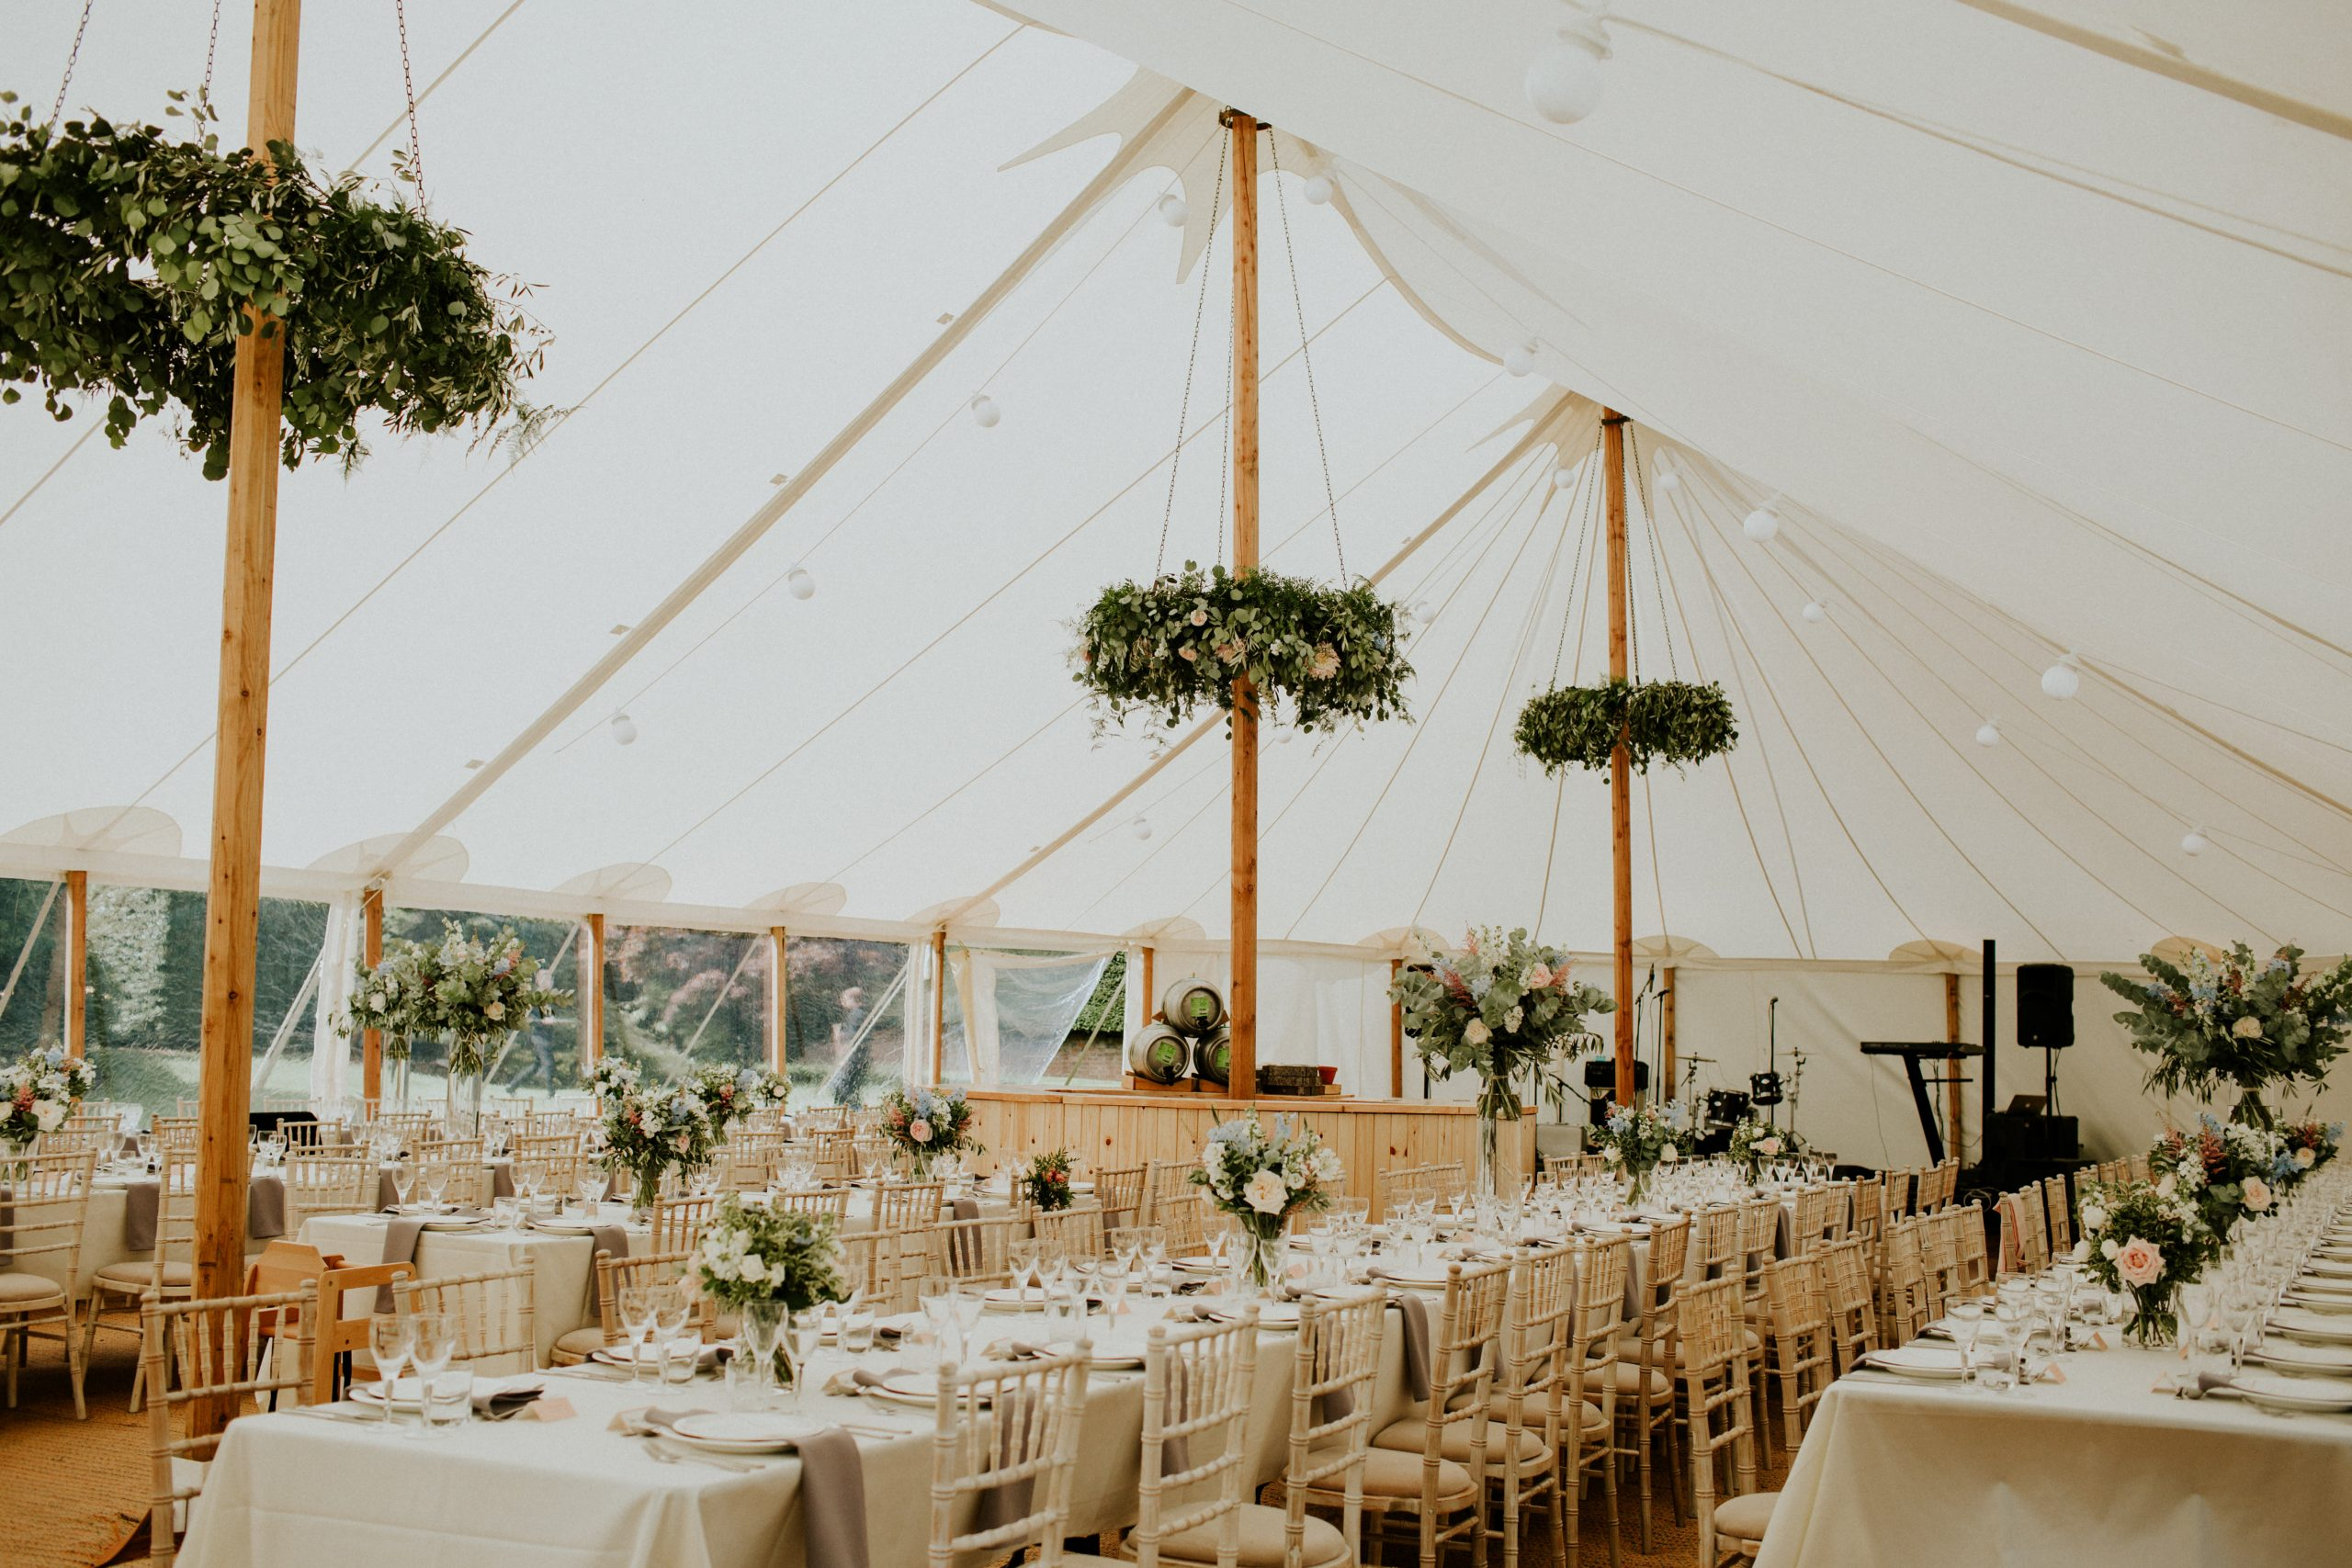 sailcloth wedding interior